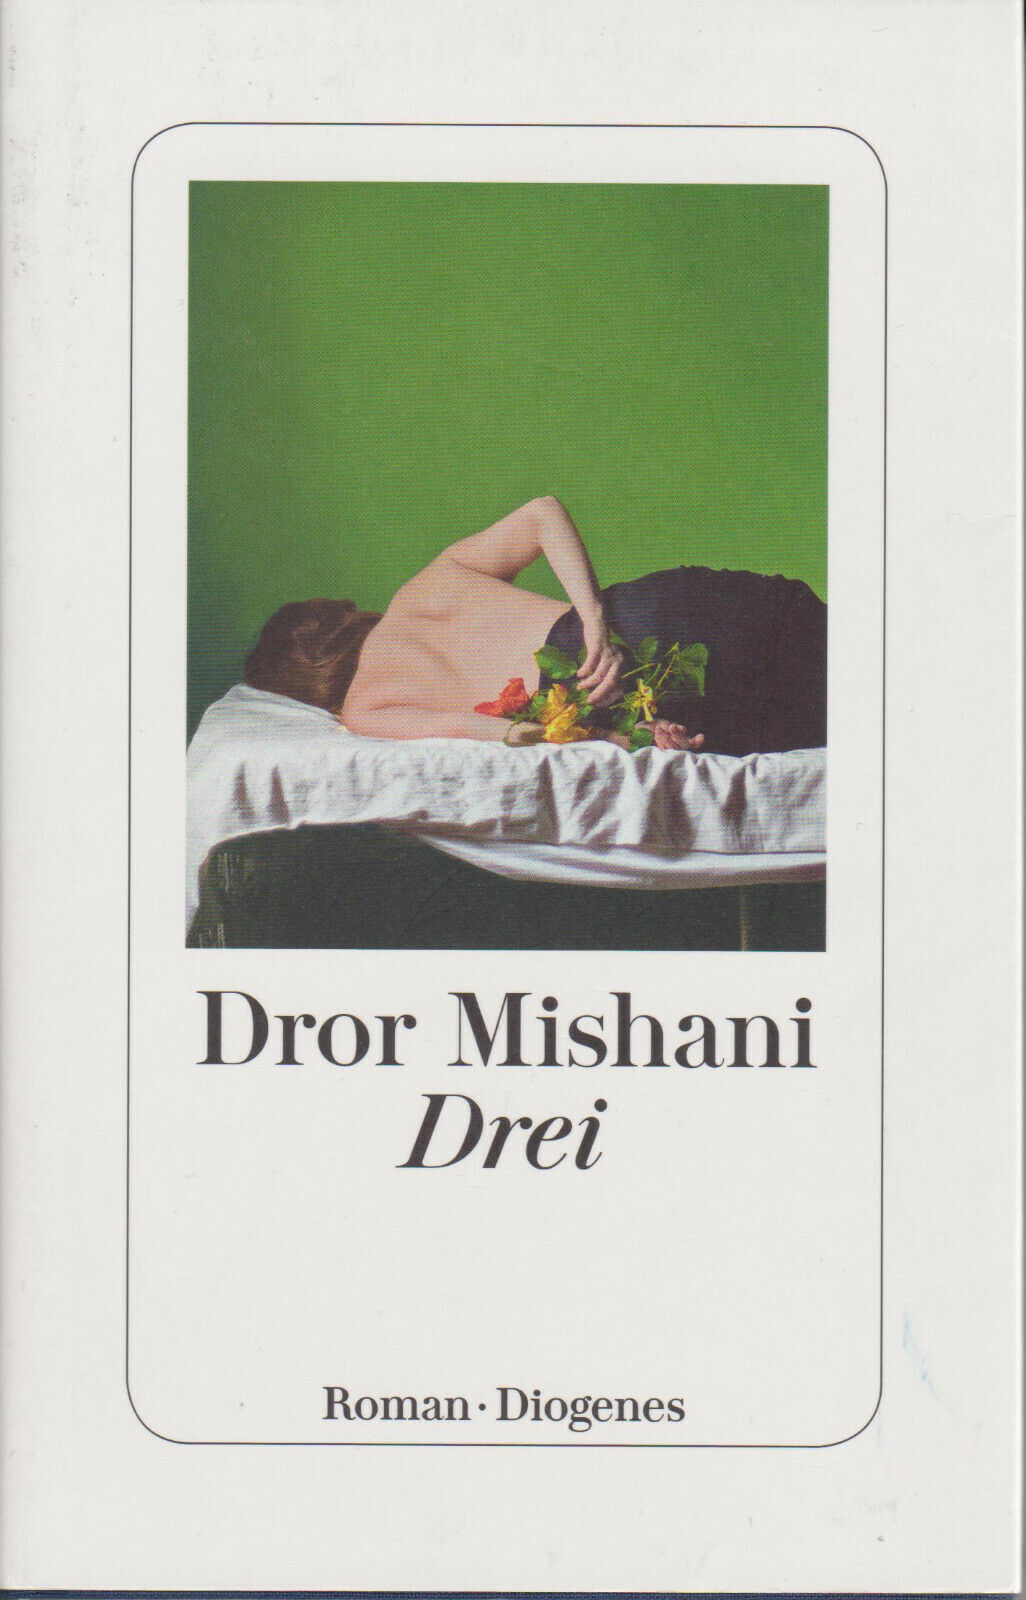 dror mishani im radio-today - Shop